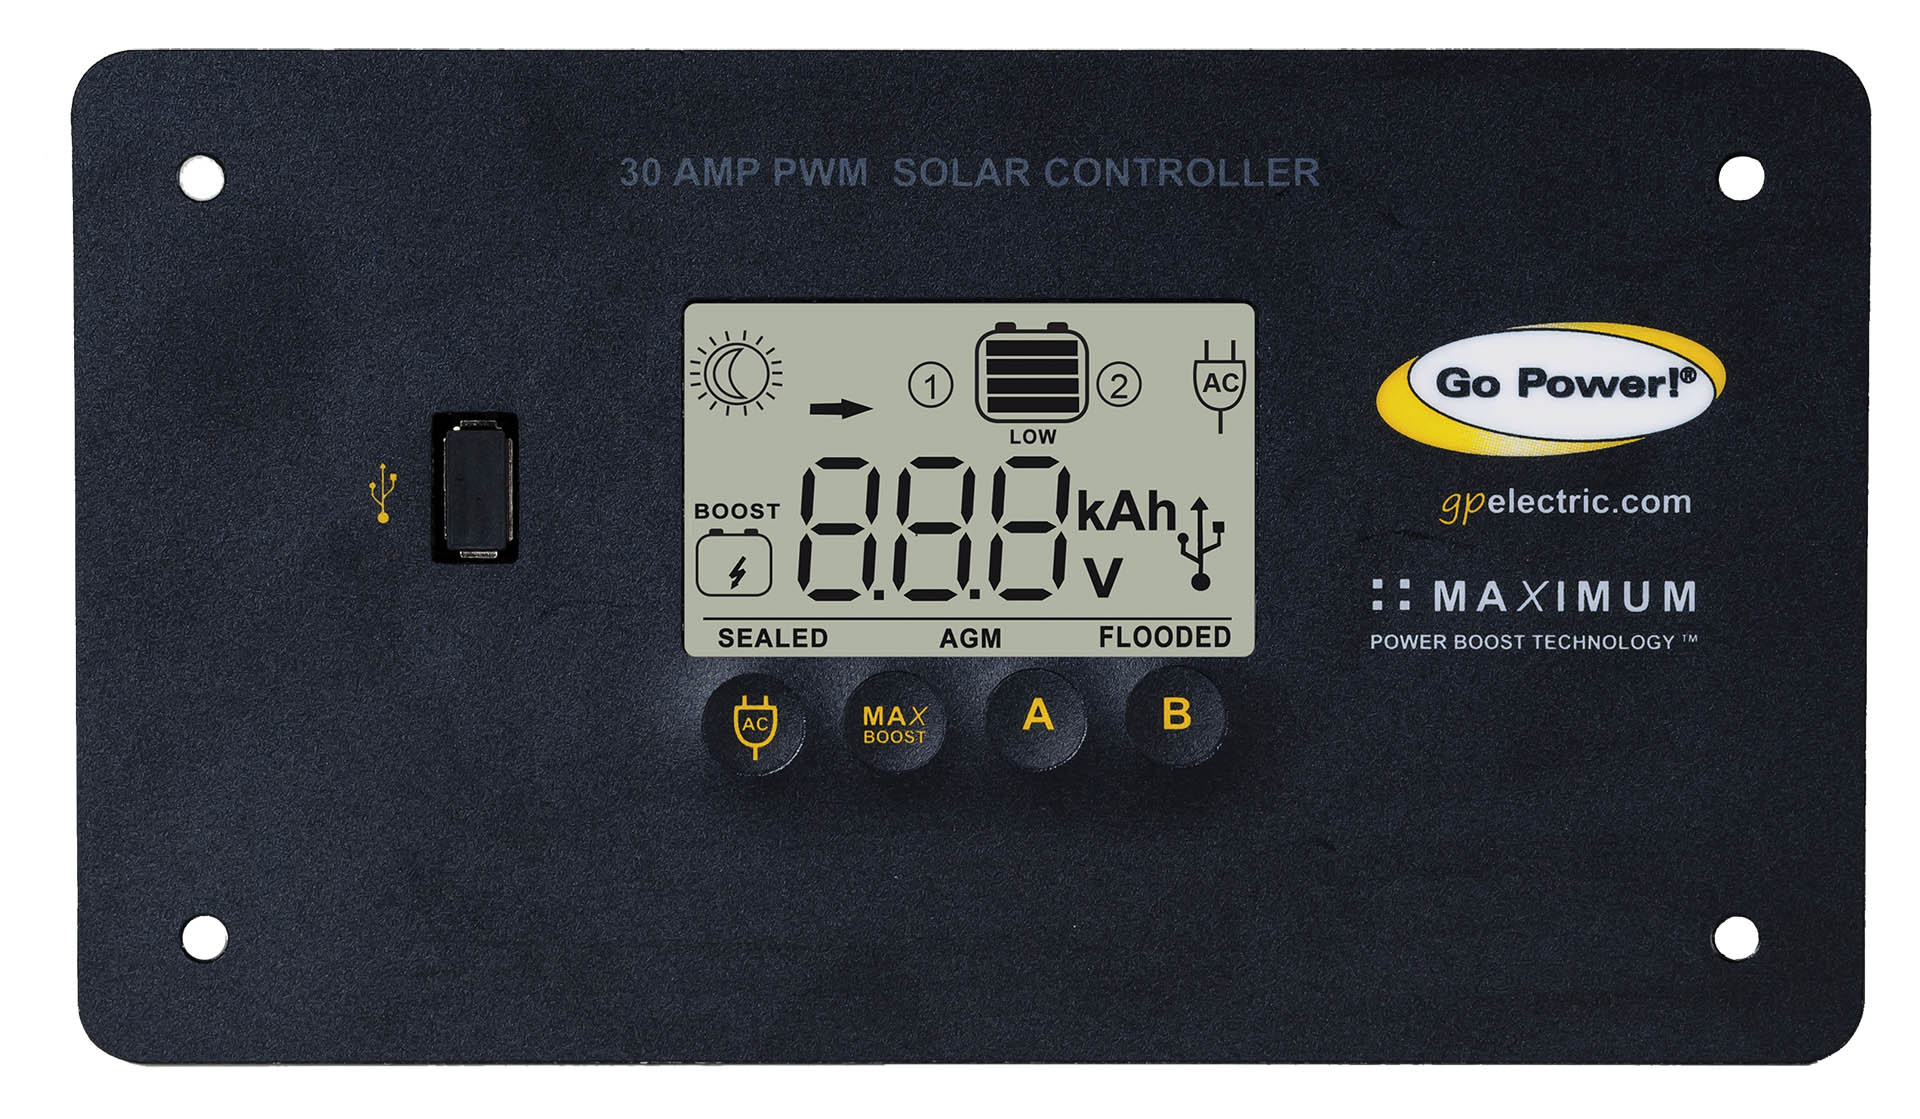 30 Amp Solar Charge Controller Pwm Go Power Products Inverters Block Diagram Electronic Works With Our Any Of Larger Kits Or Complete Systems Accepts 80 500 Watts